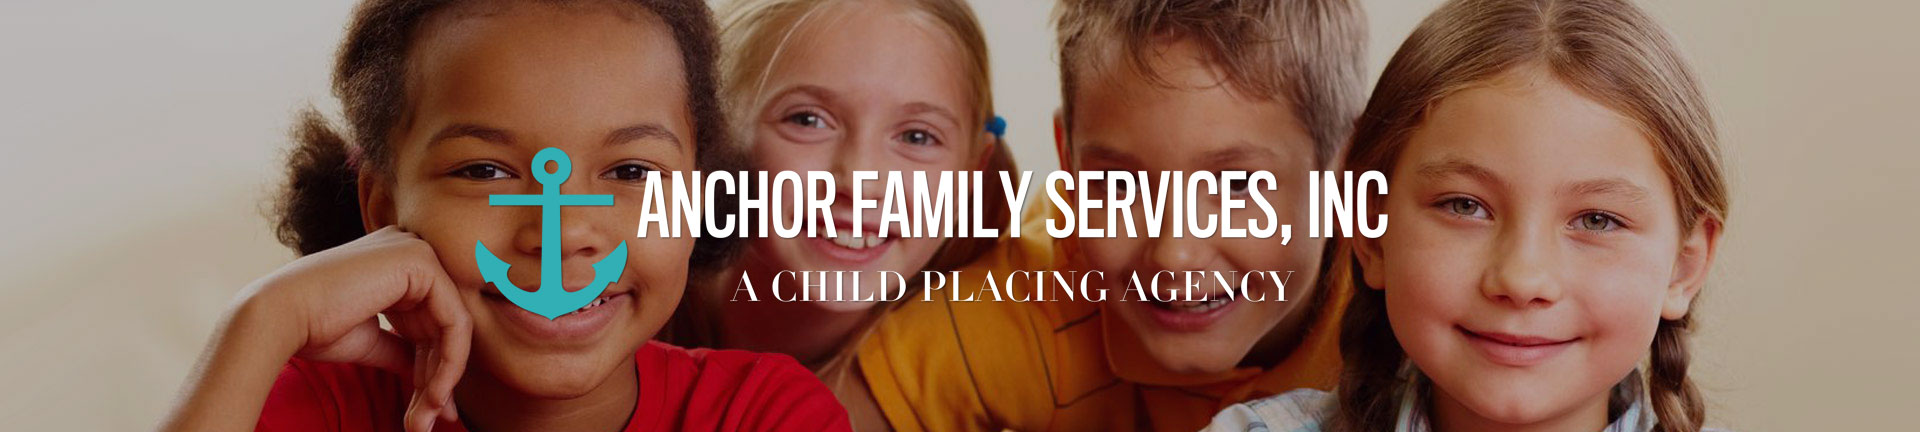 Anchor Family Services, Inc